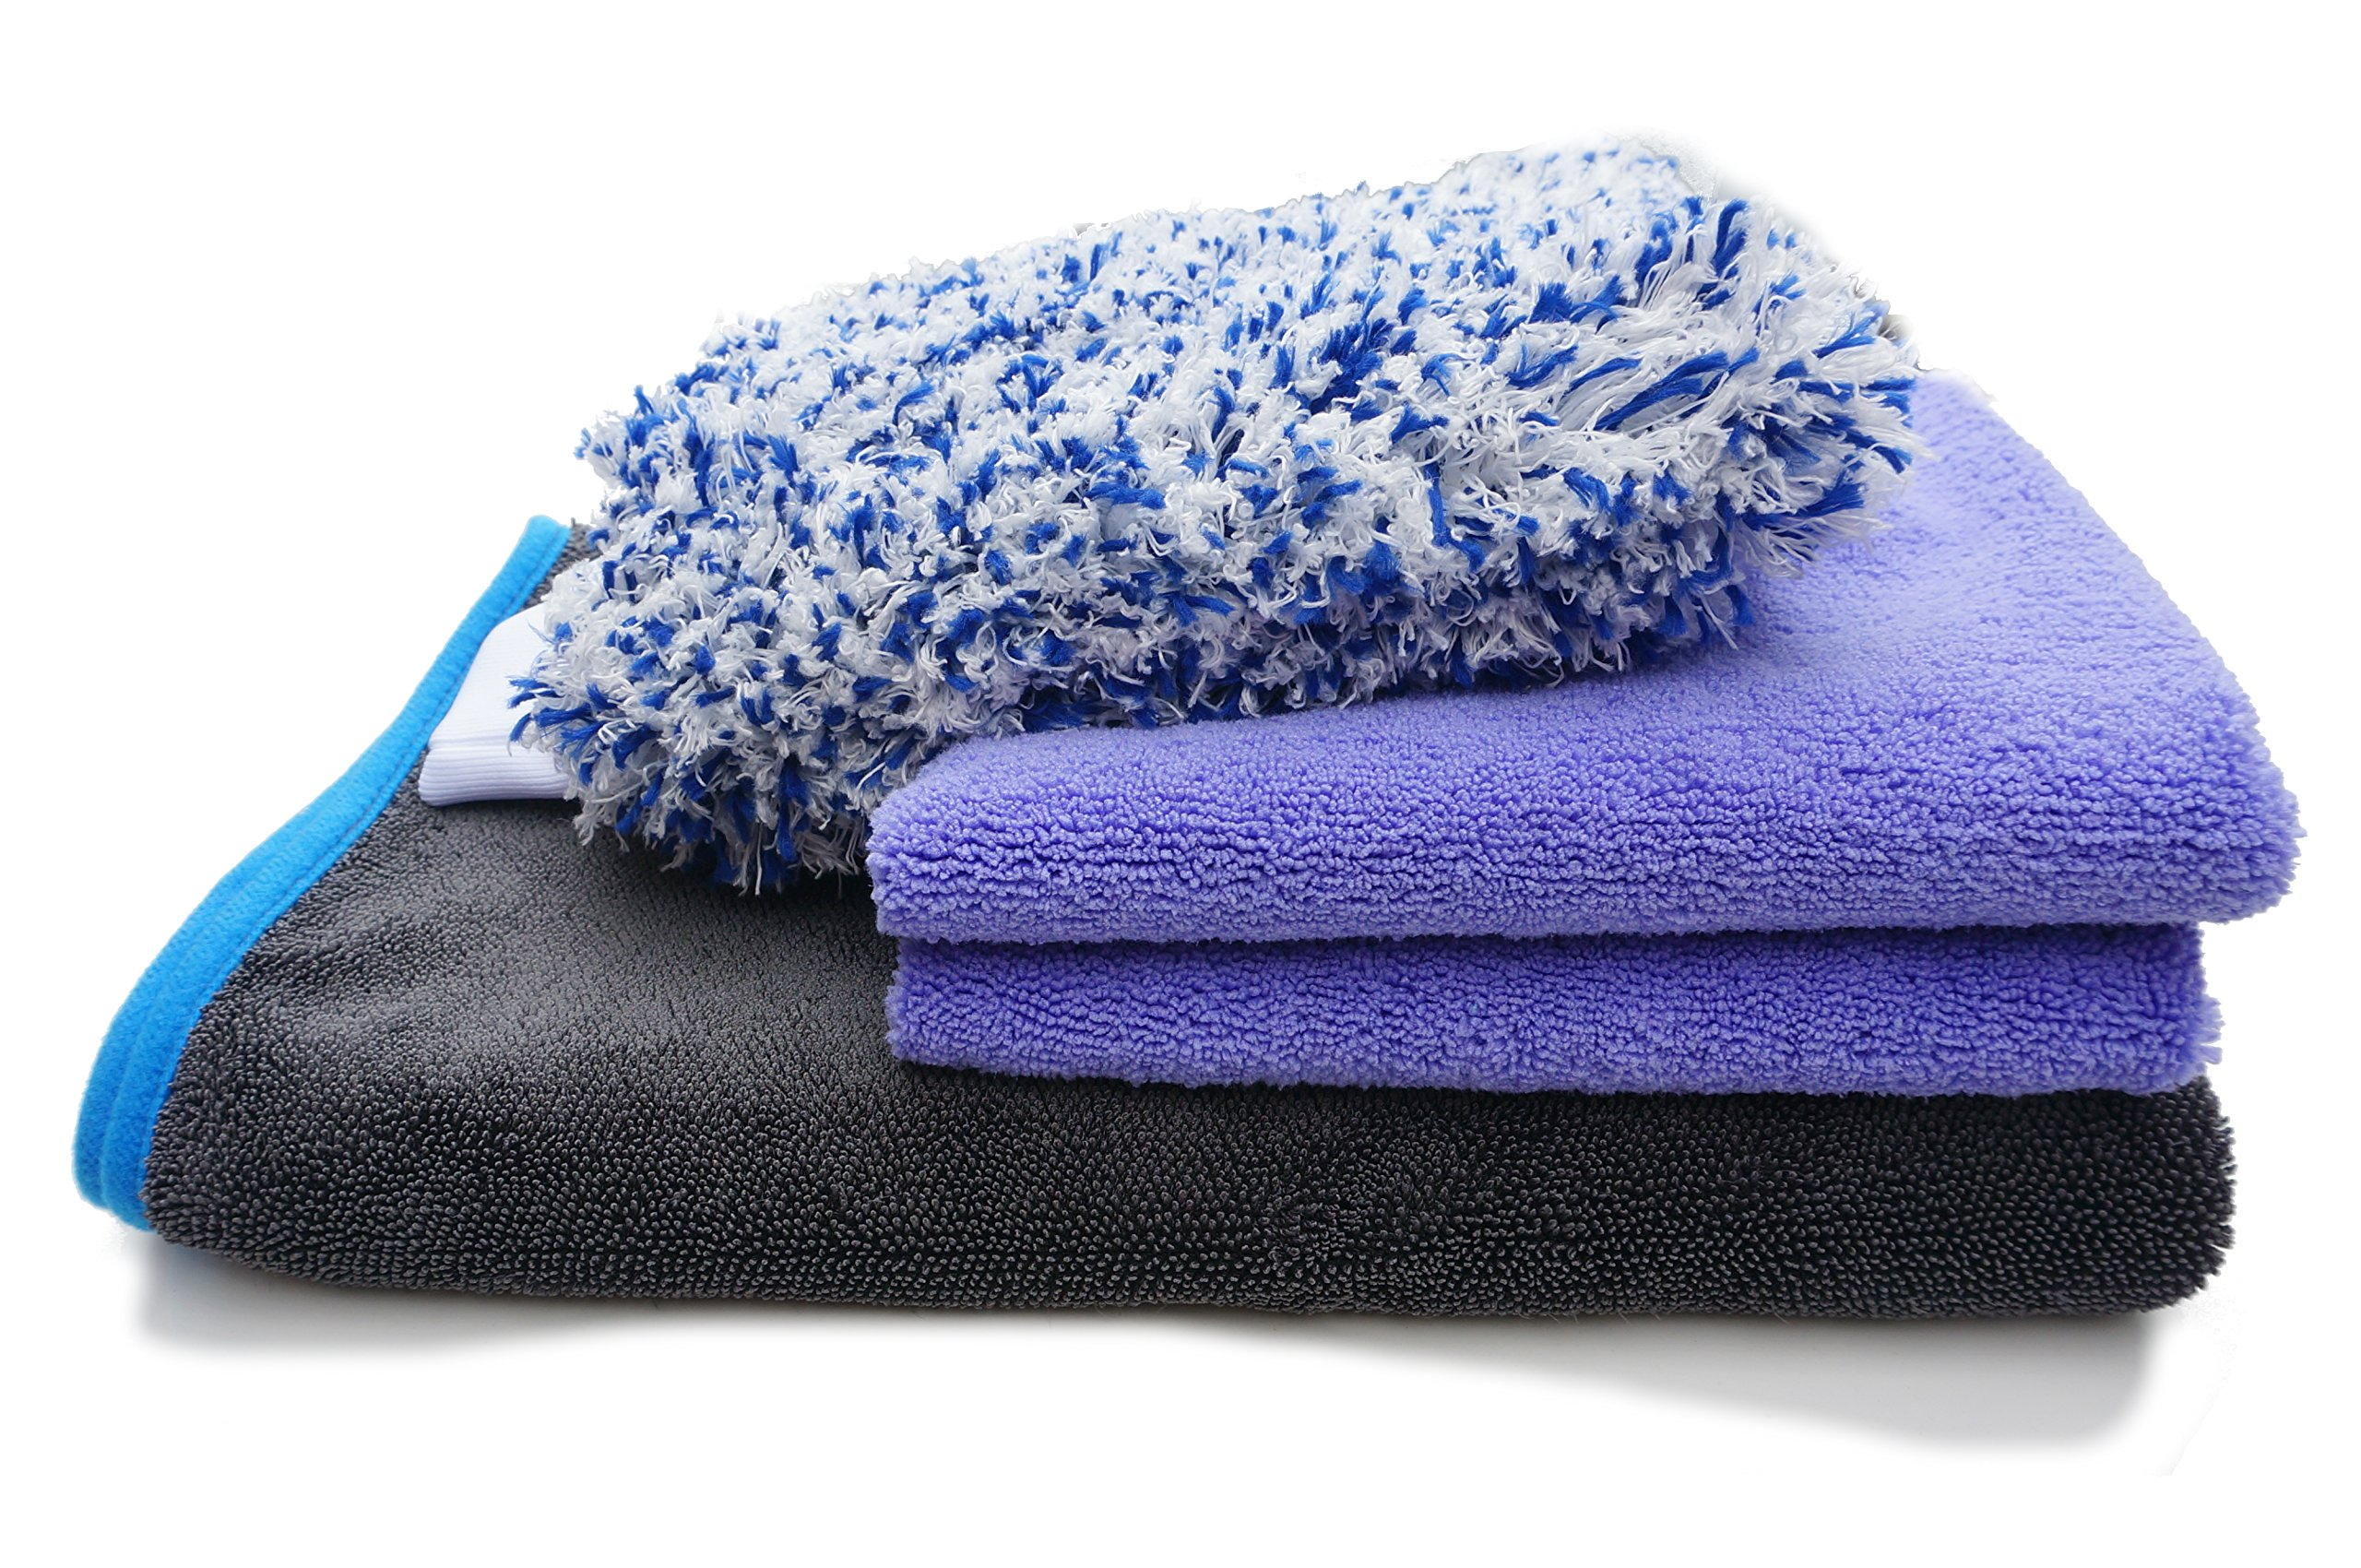 MyClover Premium Super Plush 550gsm Microfiber Auto Detailing Towels 4-in-1 SET (Large Drying Towel, 2 Double Sided Plush Towel, Scratch-Free Wash Mitt) Professional Korean Car Cleaning Buffing Towel